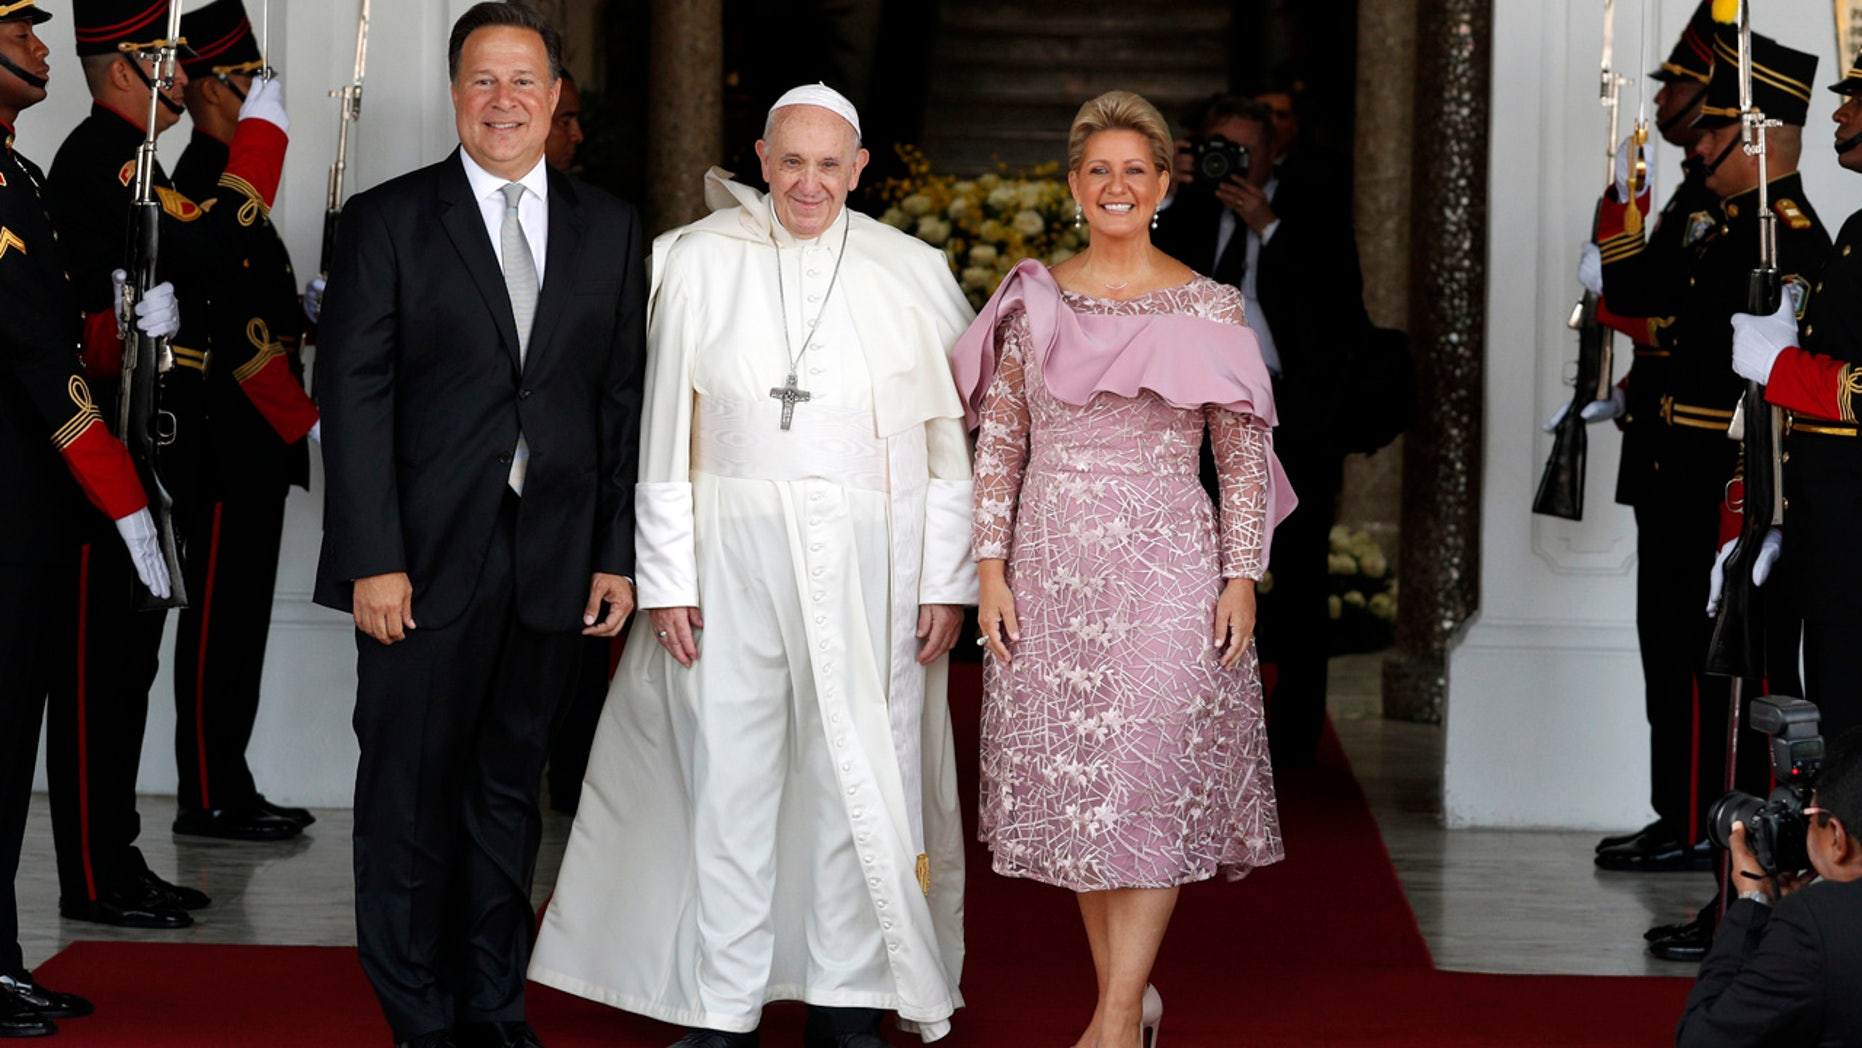 Pope Francis, Panama's President Juan Carlos Varela and first lady Lorena Castillo pose for a photo at entrance of the presidential palace in Panama City, Thursday. (AP Photo/Rebecca Blackwell)